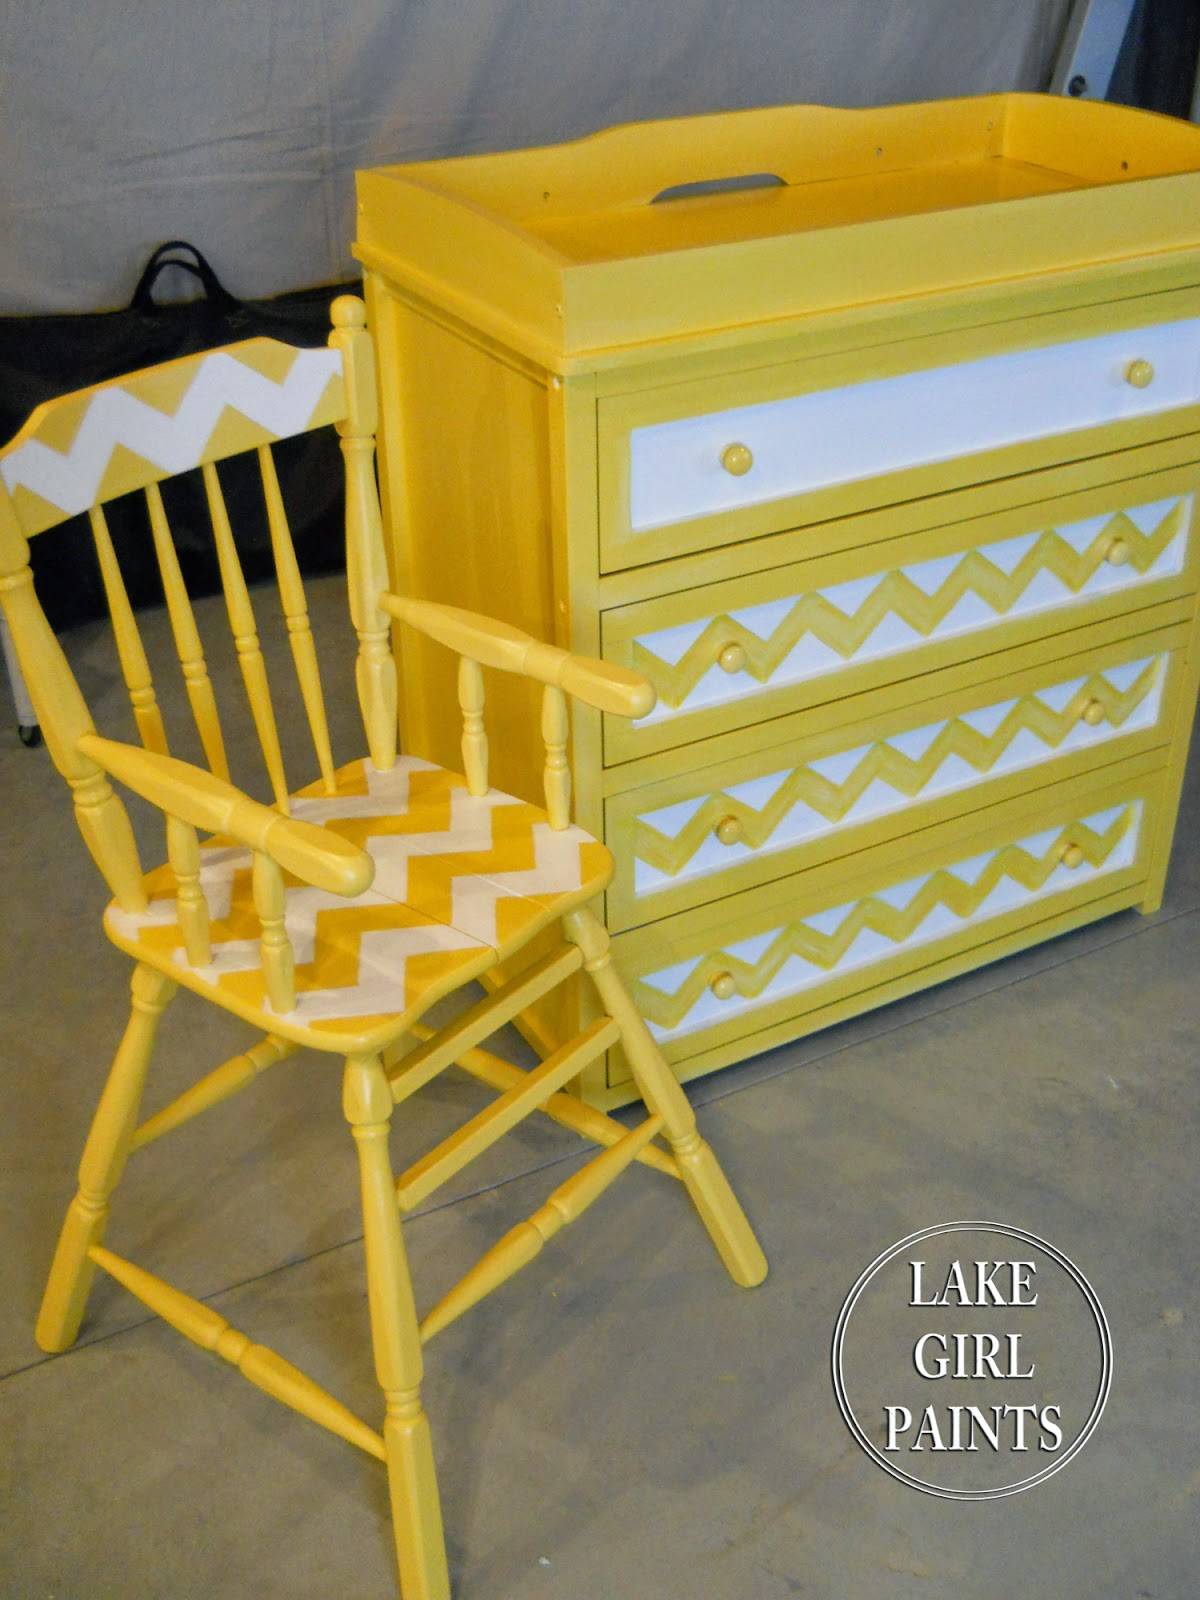 Lake girl paints painted patterns on furniture for Furniture 80s band